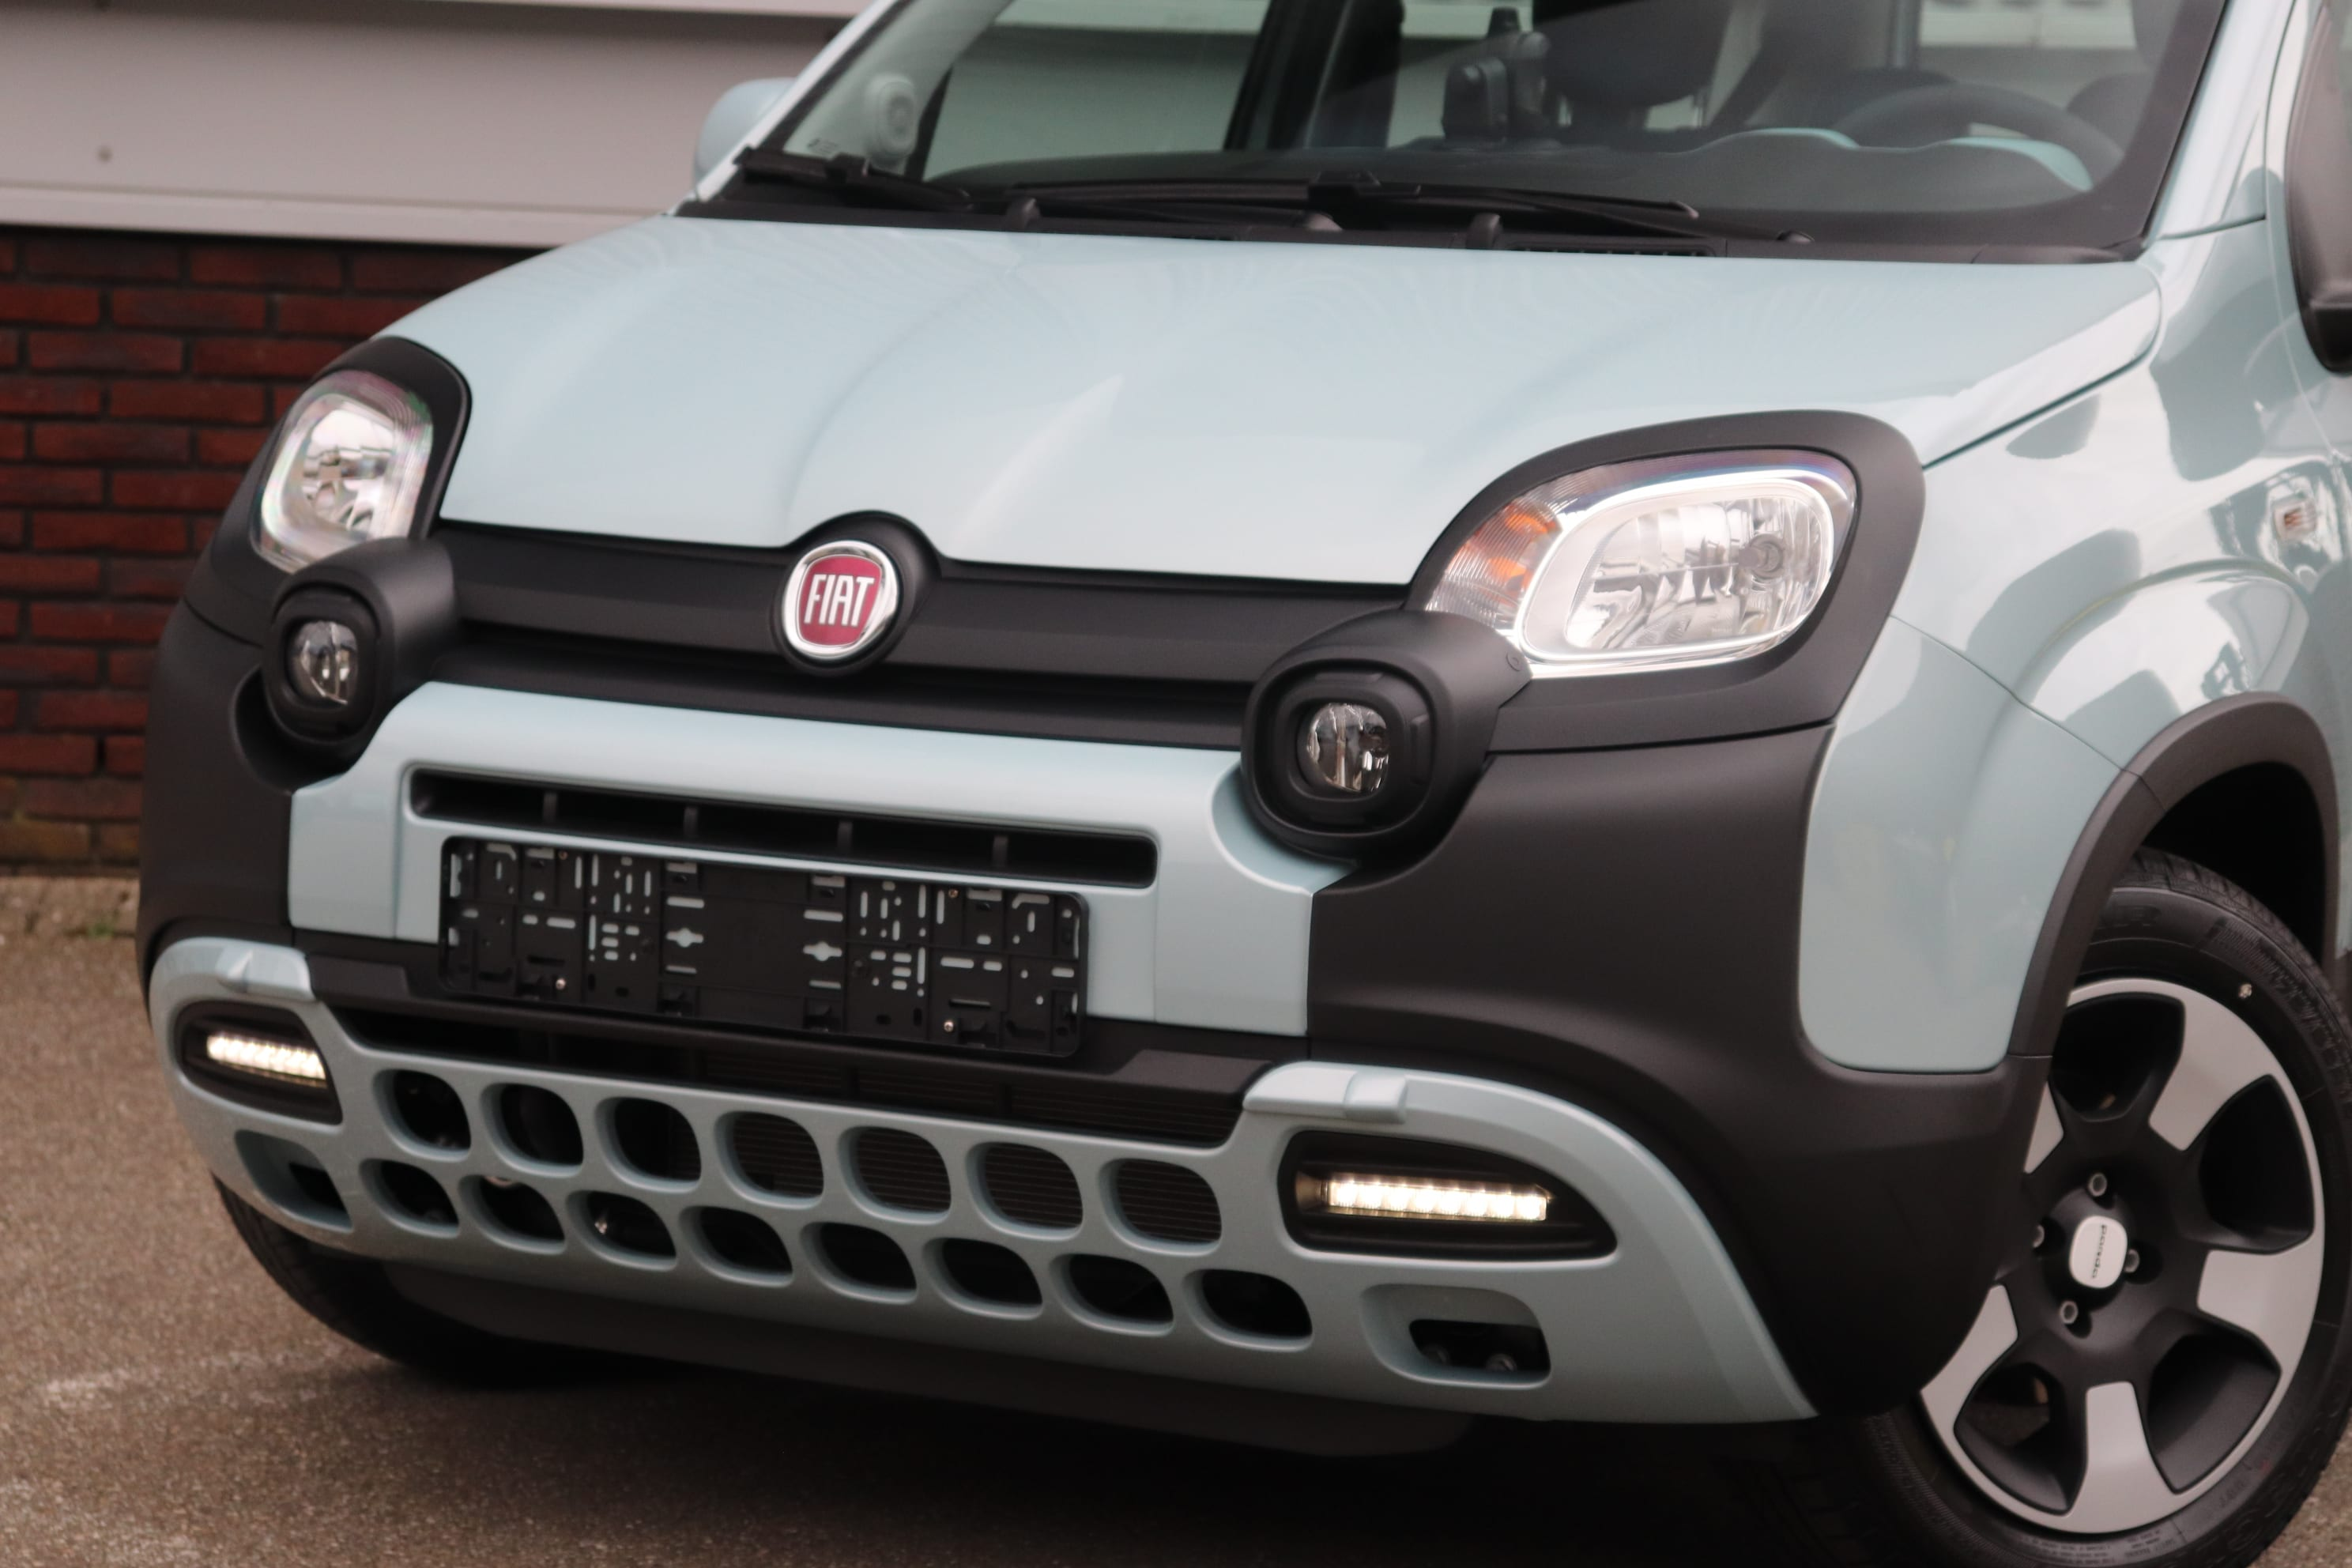 Fiat Panda Hybrid Launch Edition mintgroen - schuin vooraanzicht close up